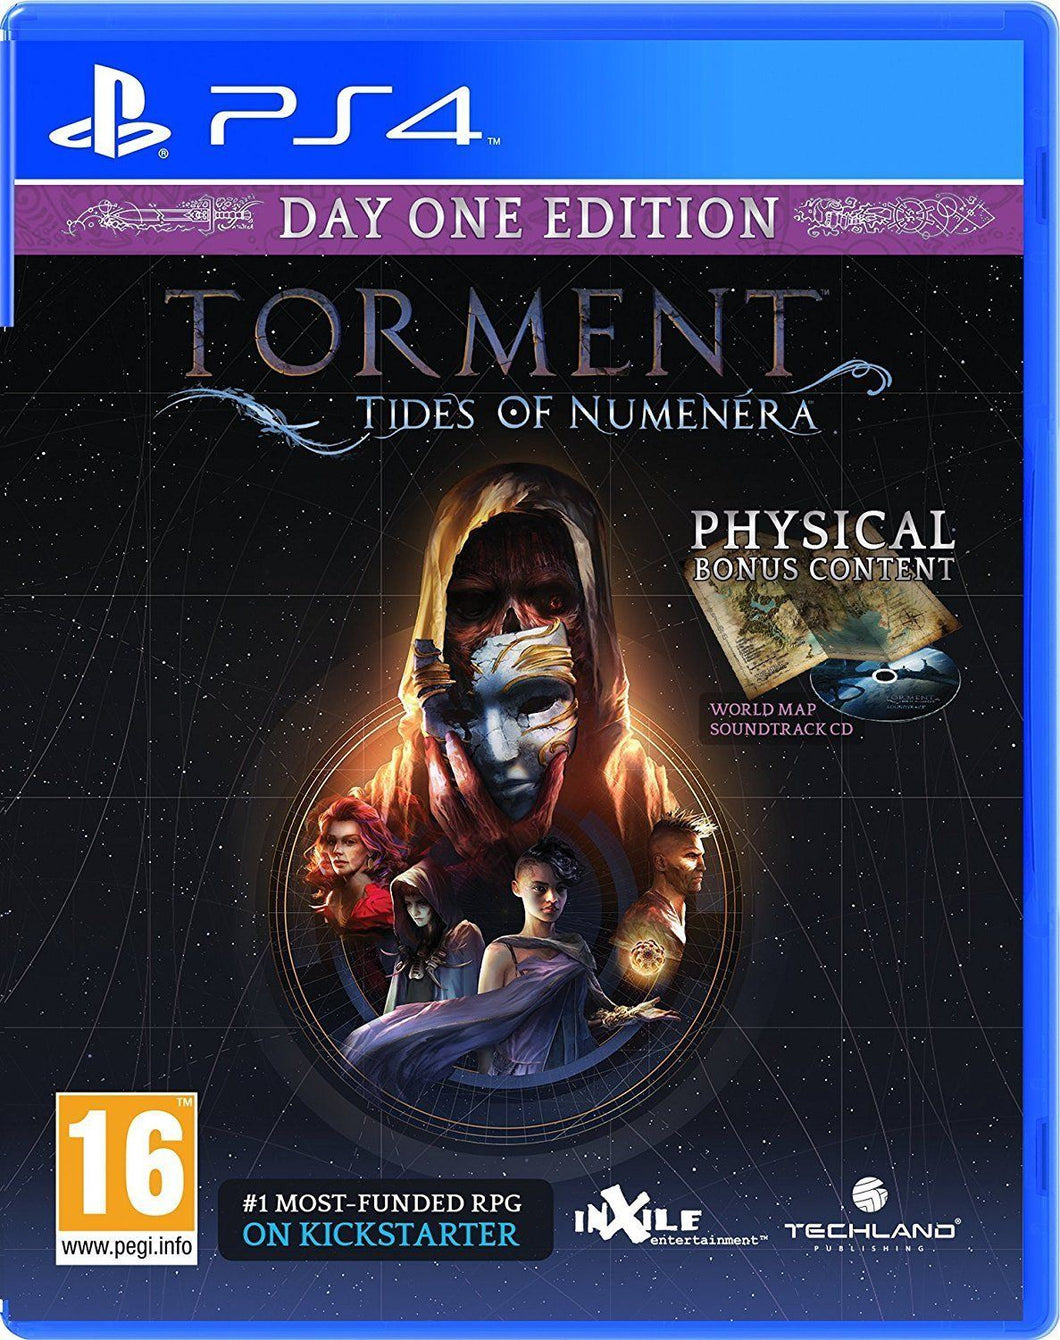 TORMENT: TIDES OF NUMENARA - Day One Edition